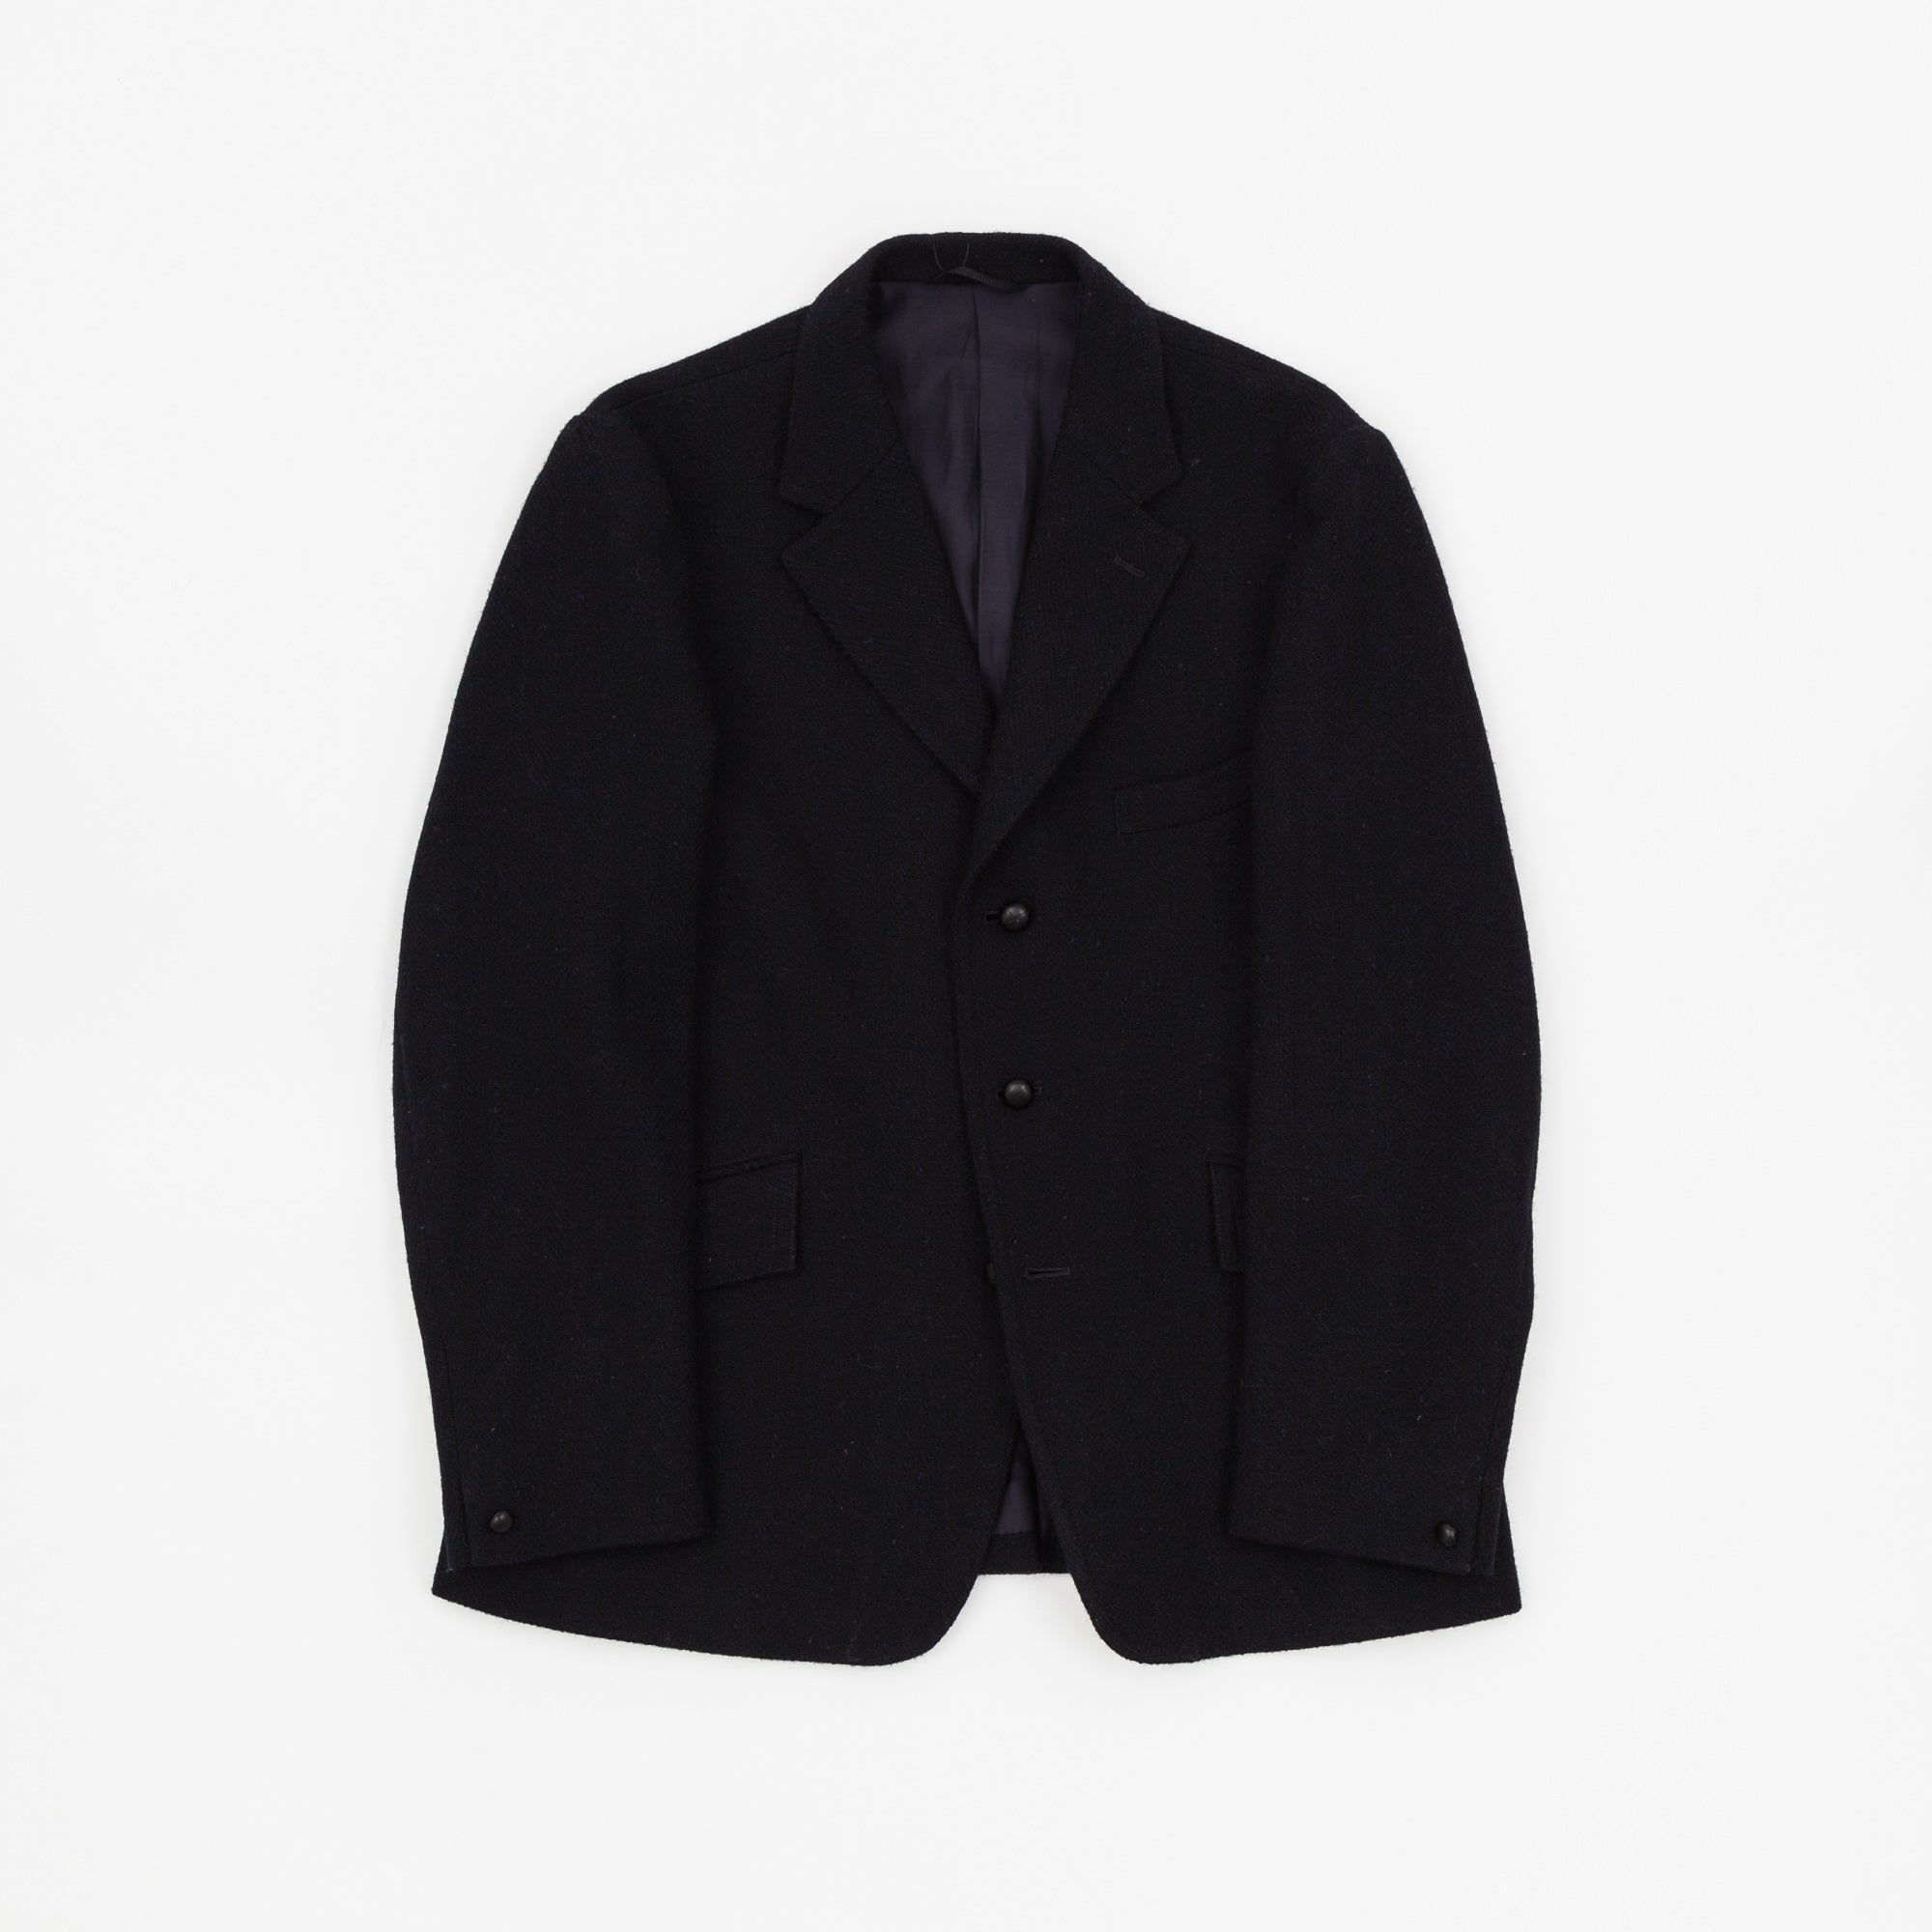 Anatomica Harris Tweed Jacket